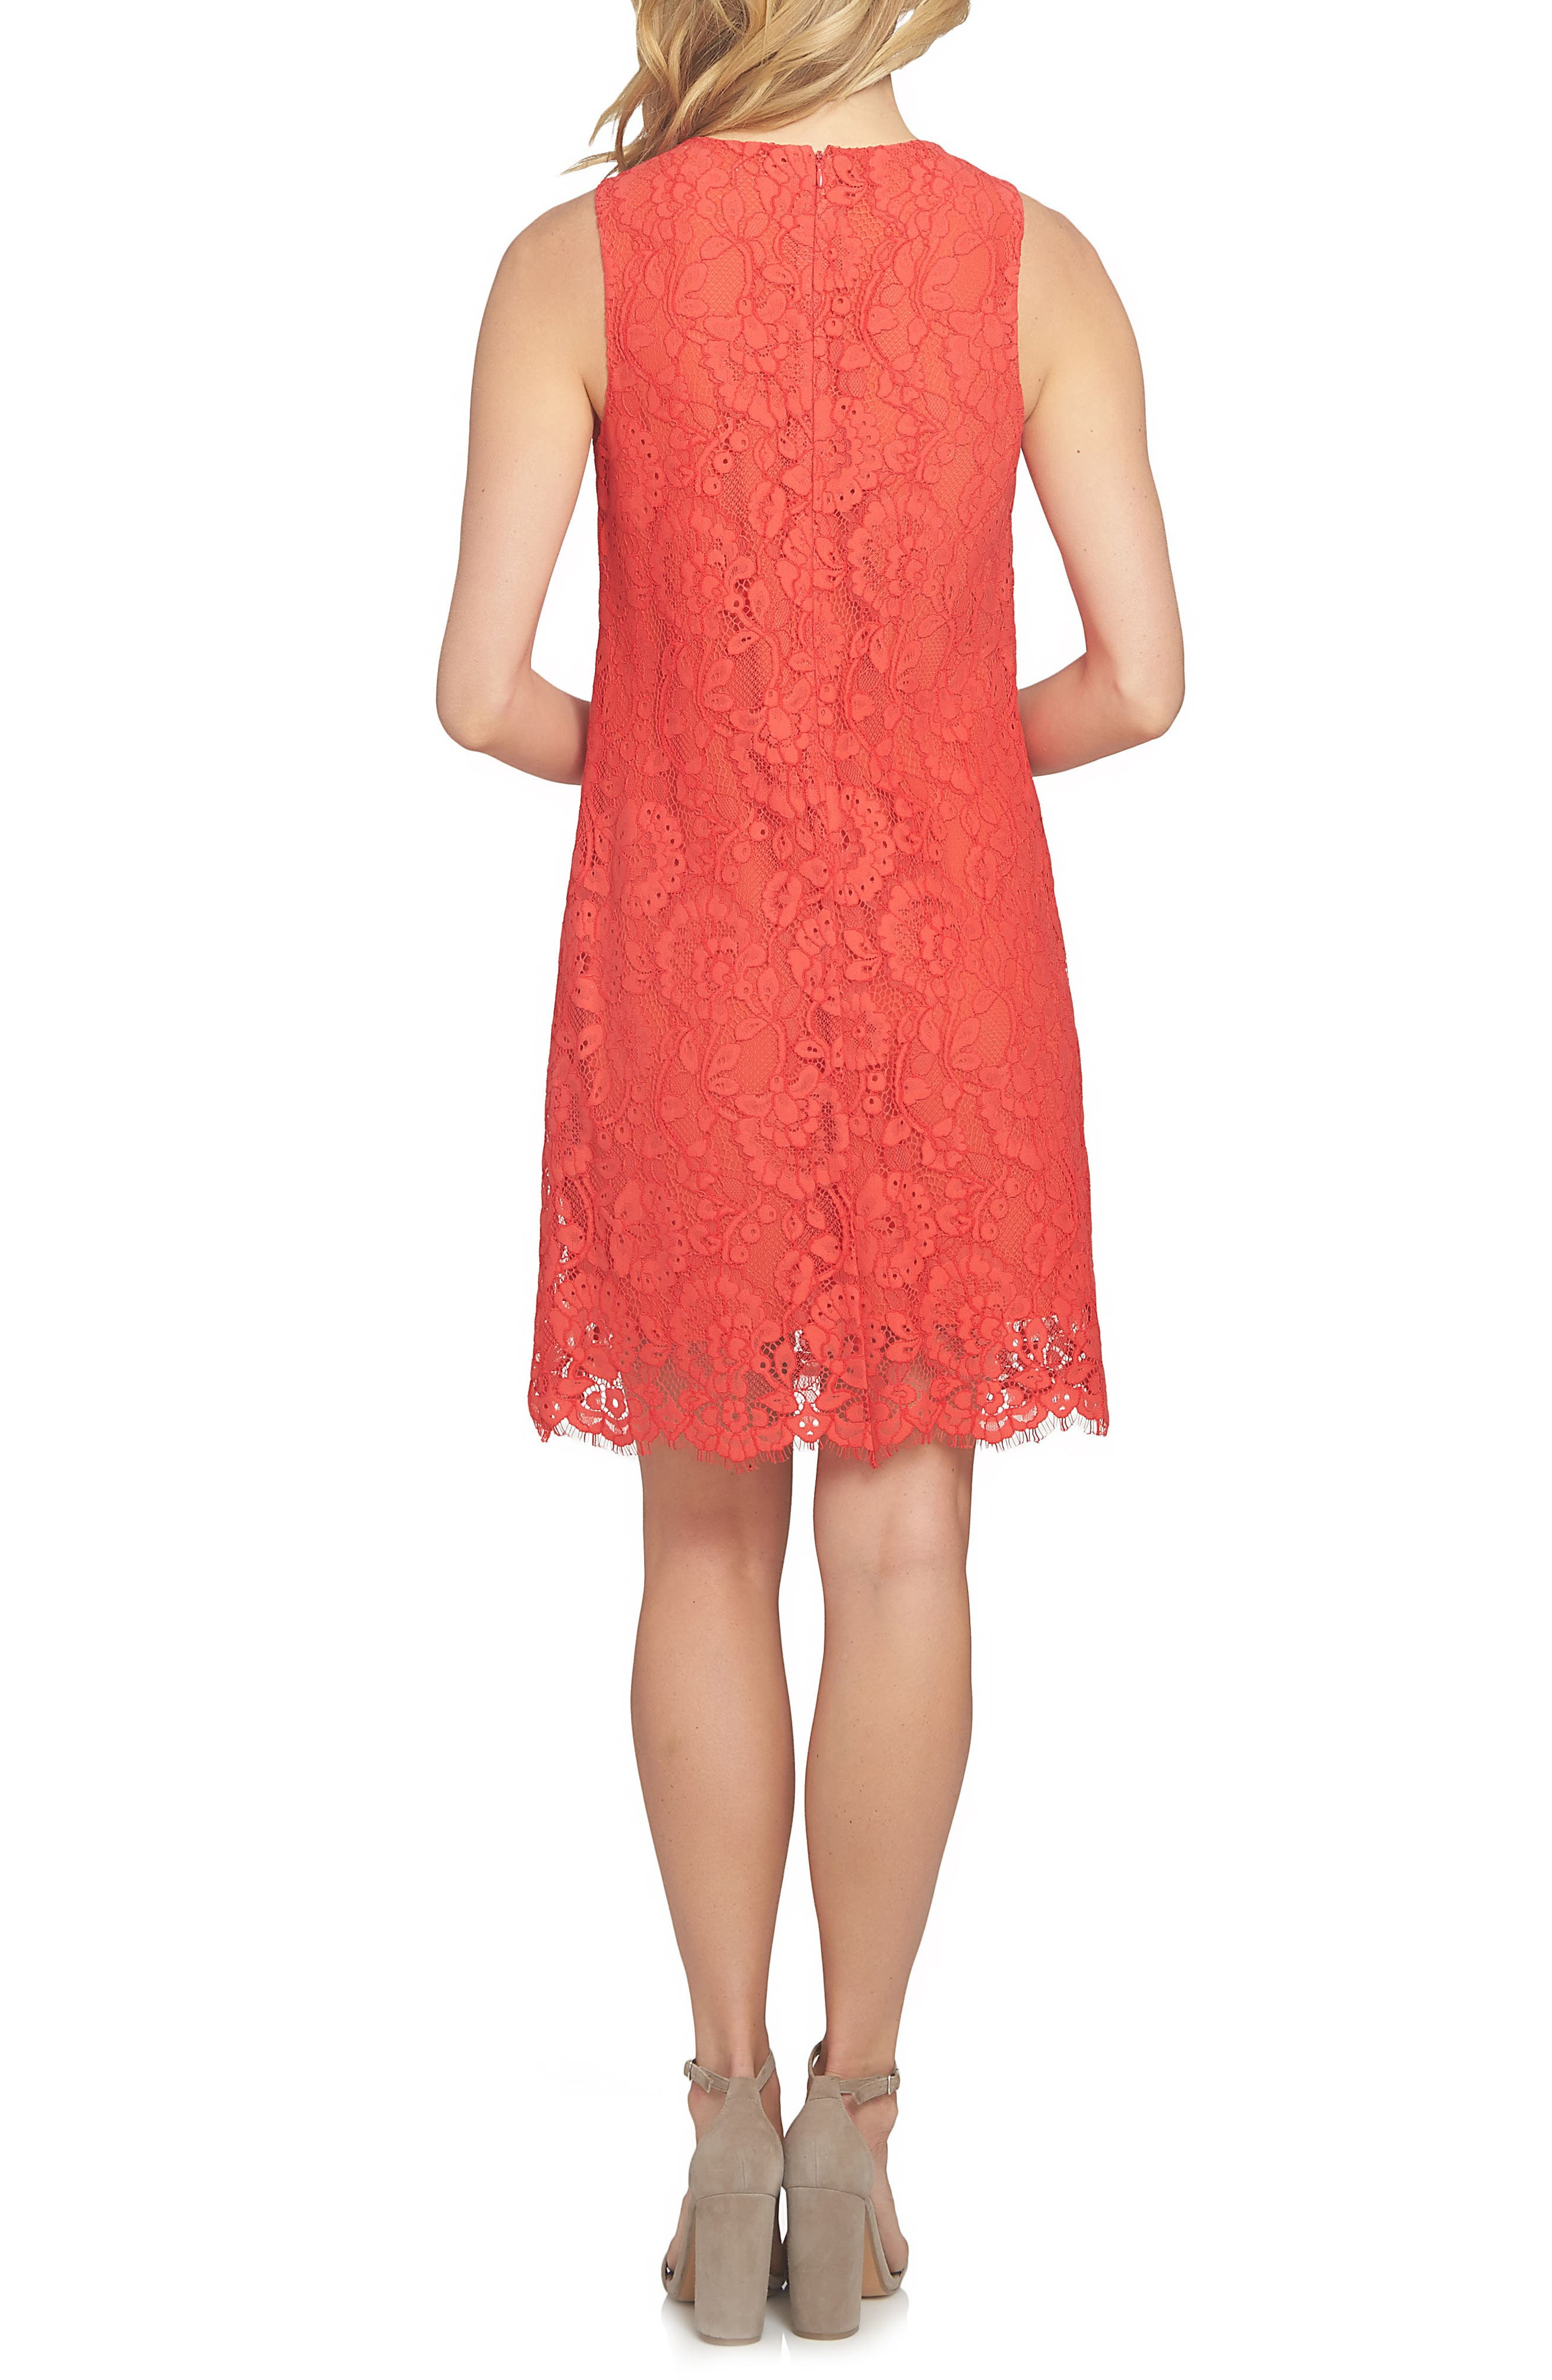 Arlington A-Line Dress,                             Alternate thumbnail 2, color,                             Fiery Red